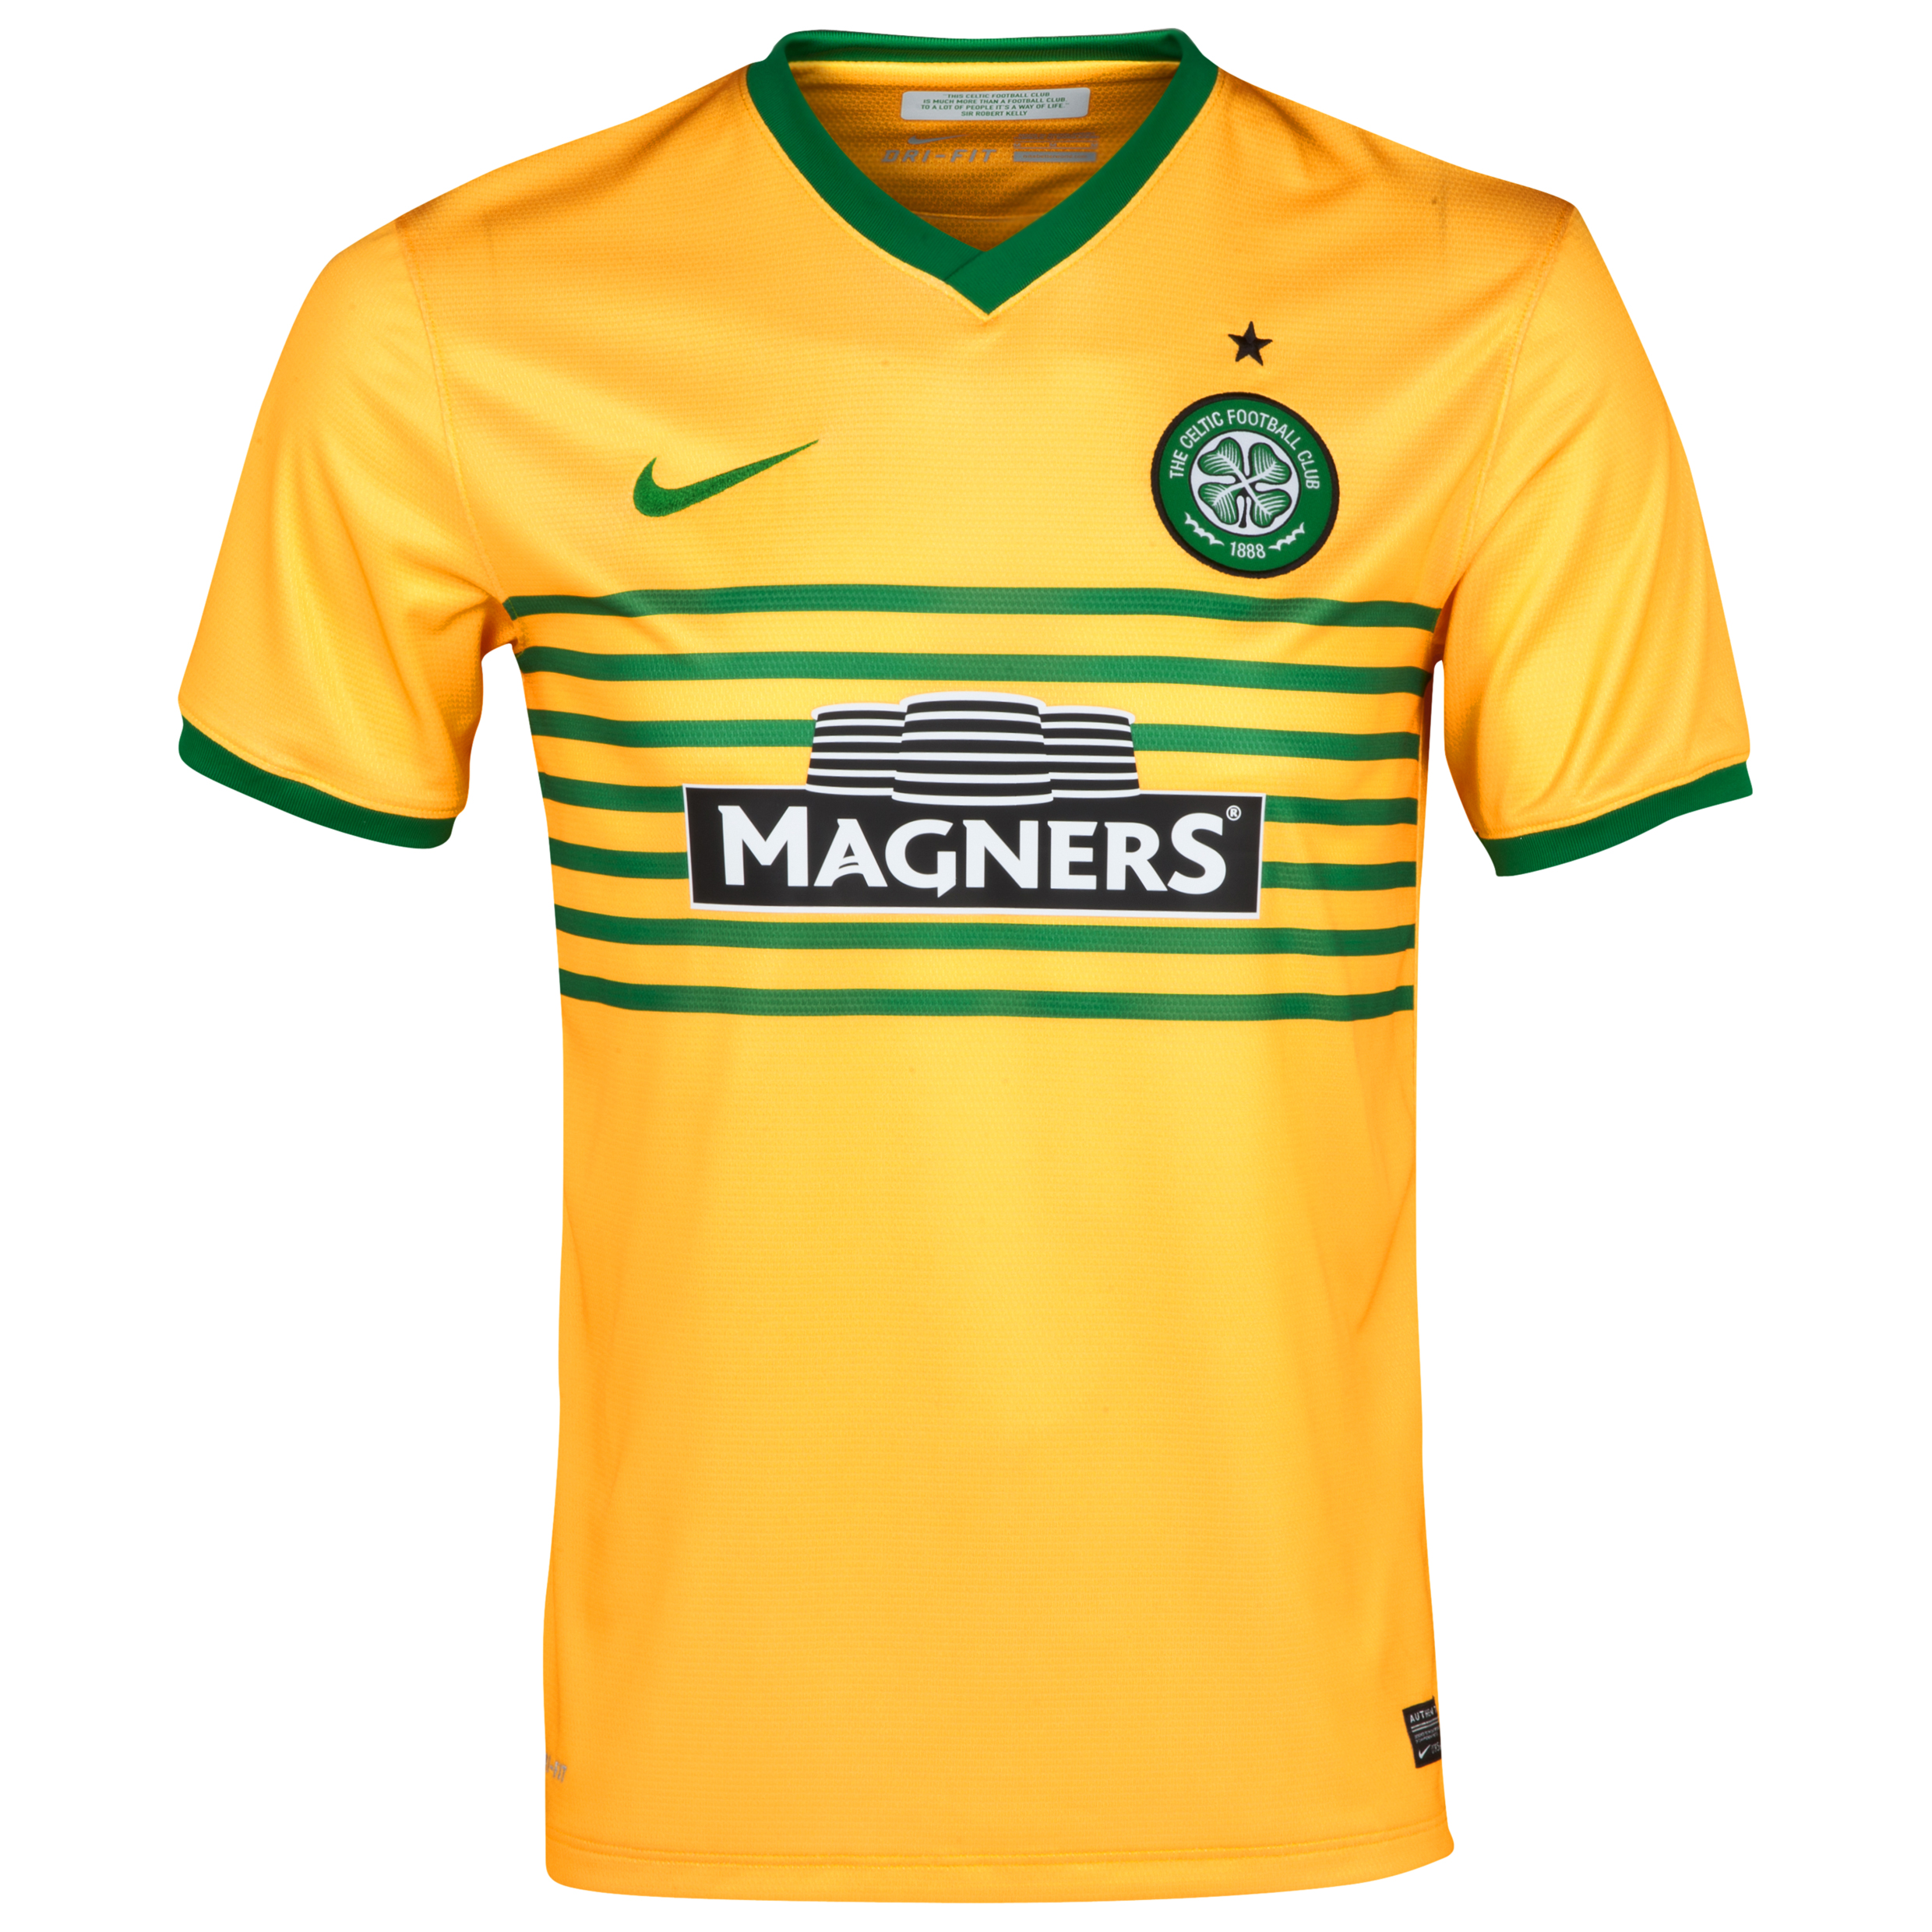 2013/14 Away Kit From £35.70